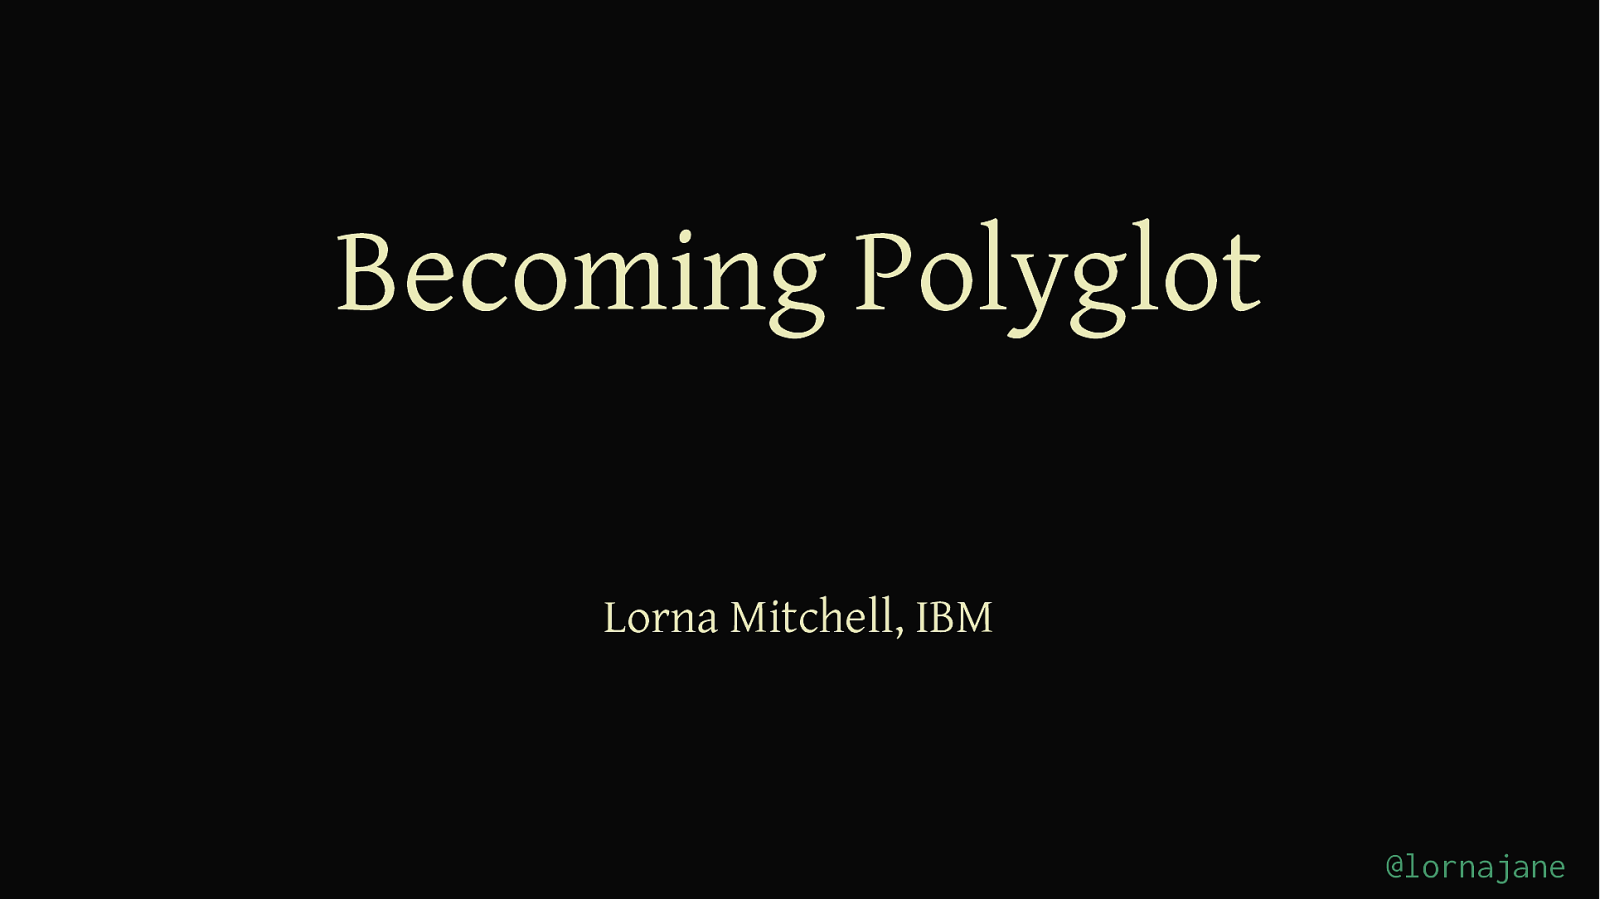 Becoming Polyglot